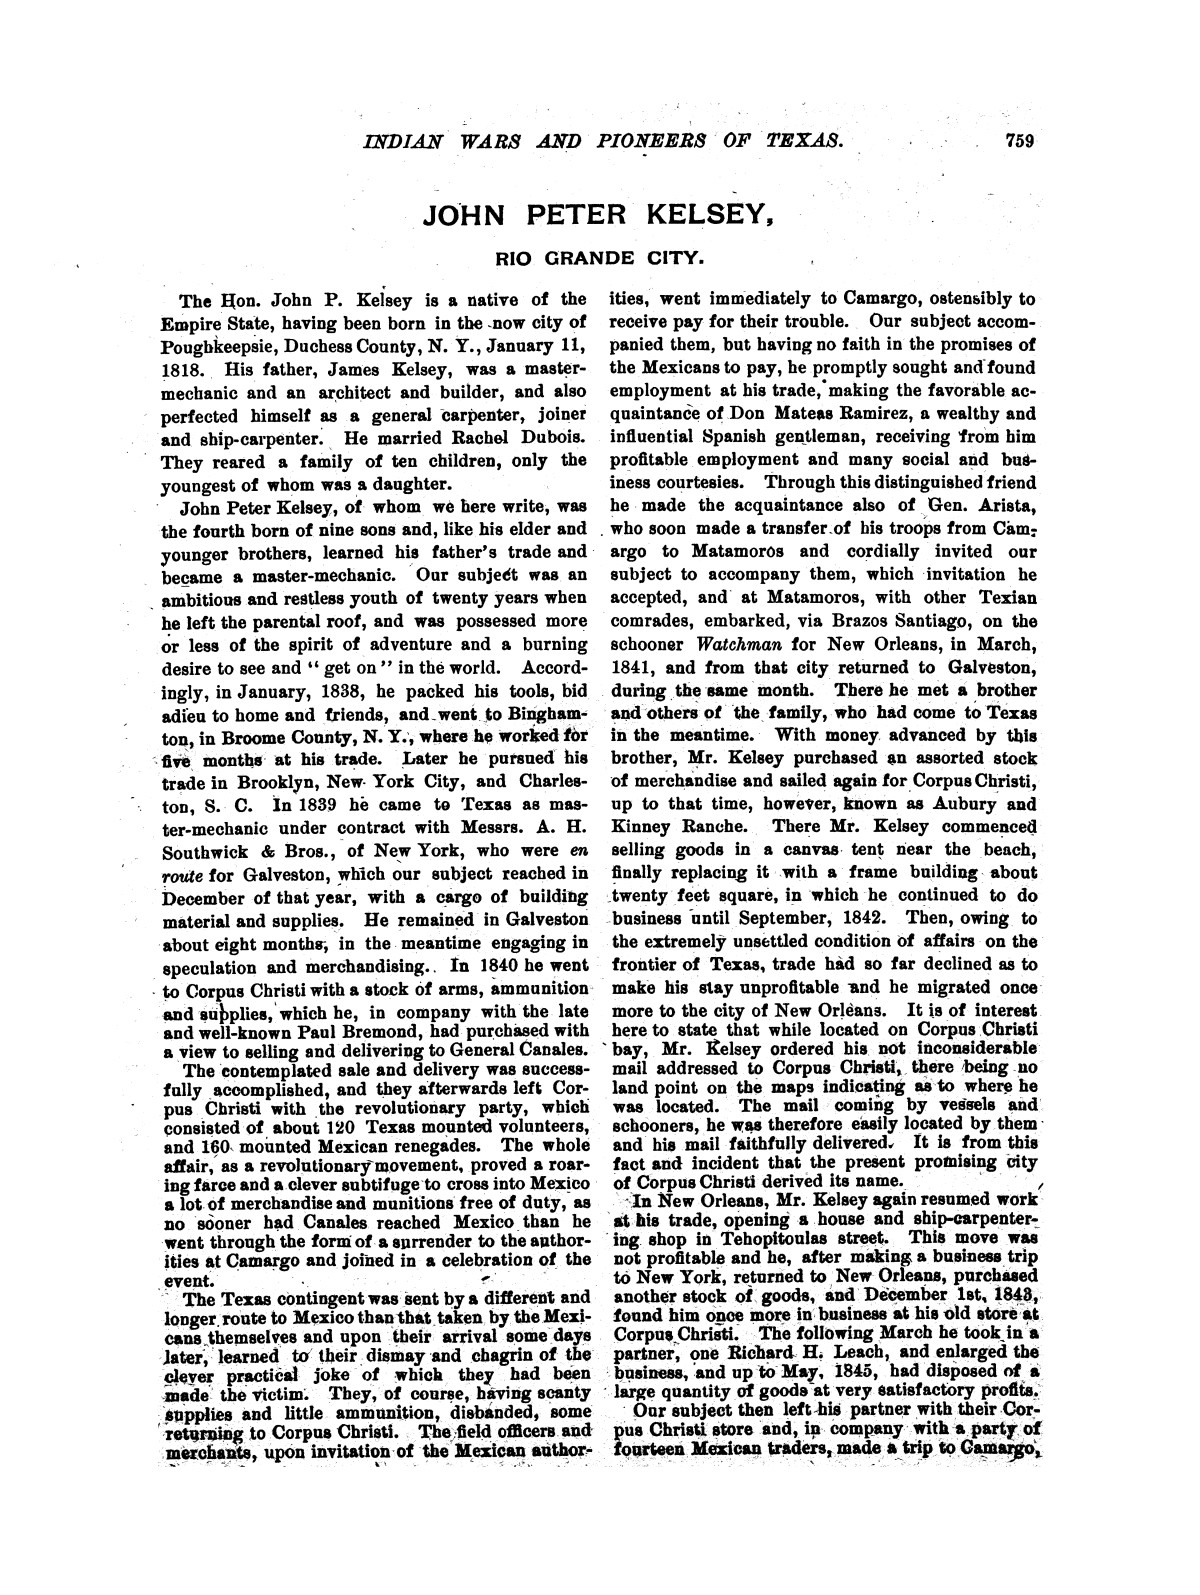 Indian wars and pioneers of Texas                                                                                                      [Sequence #]: 885 of 894